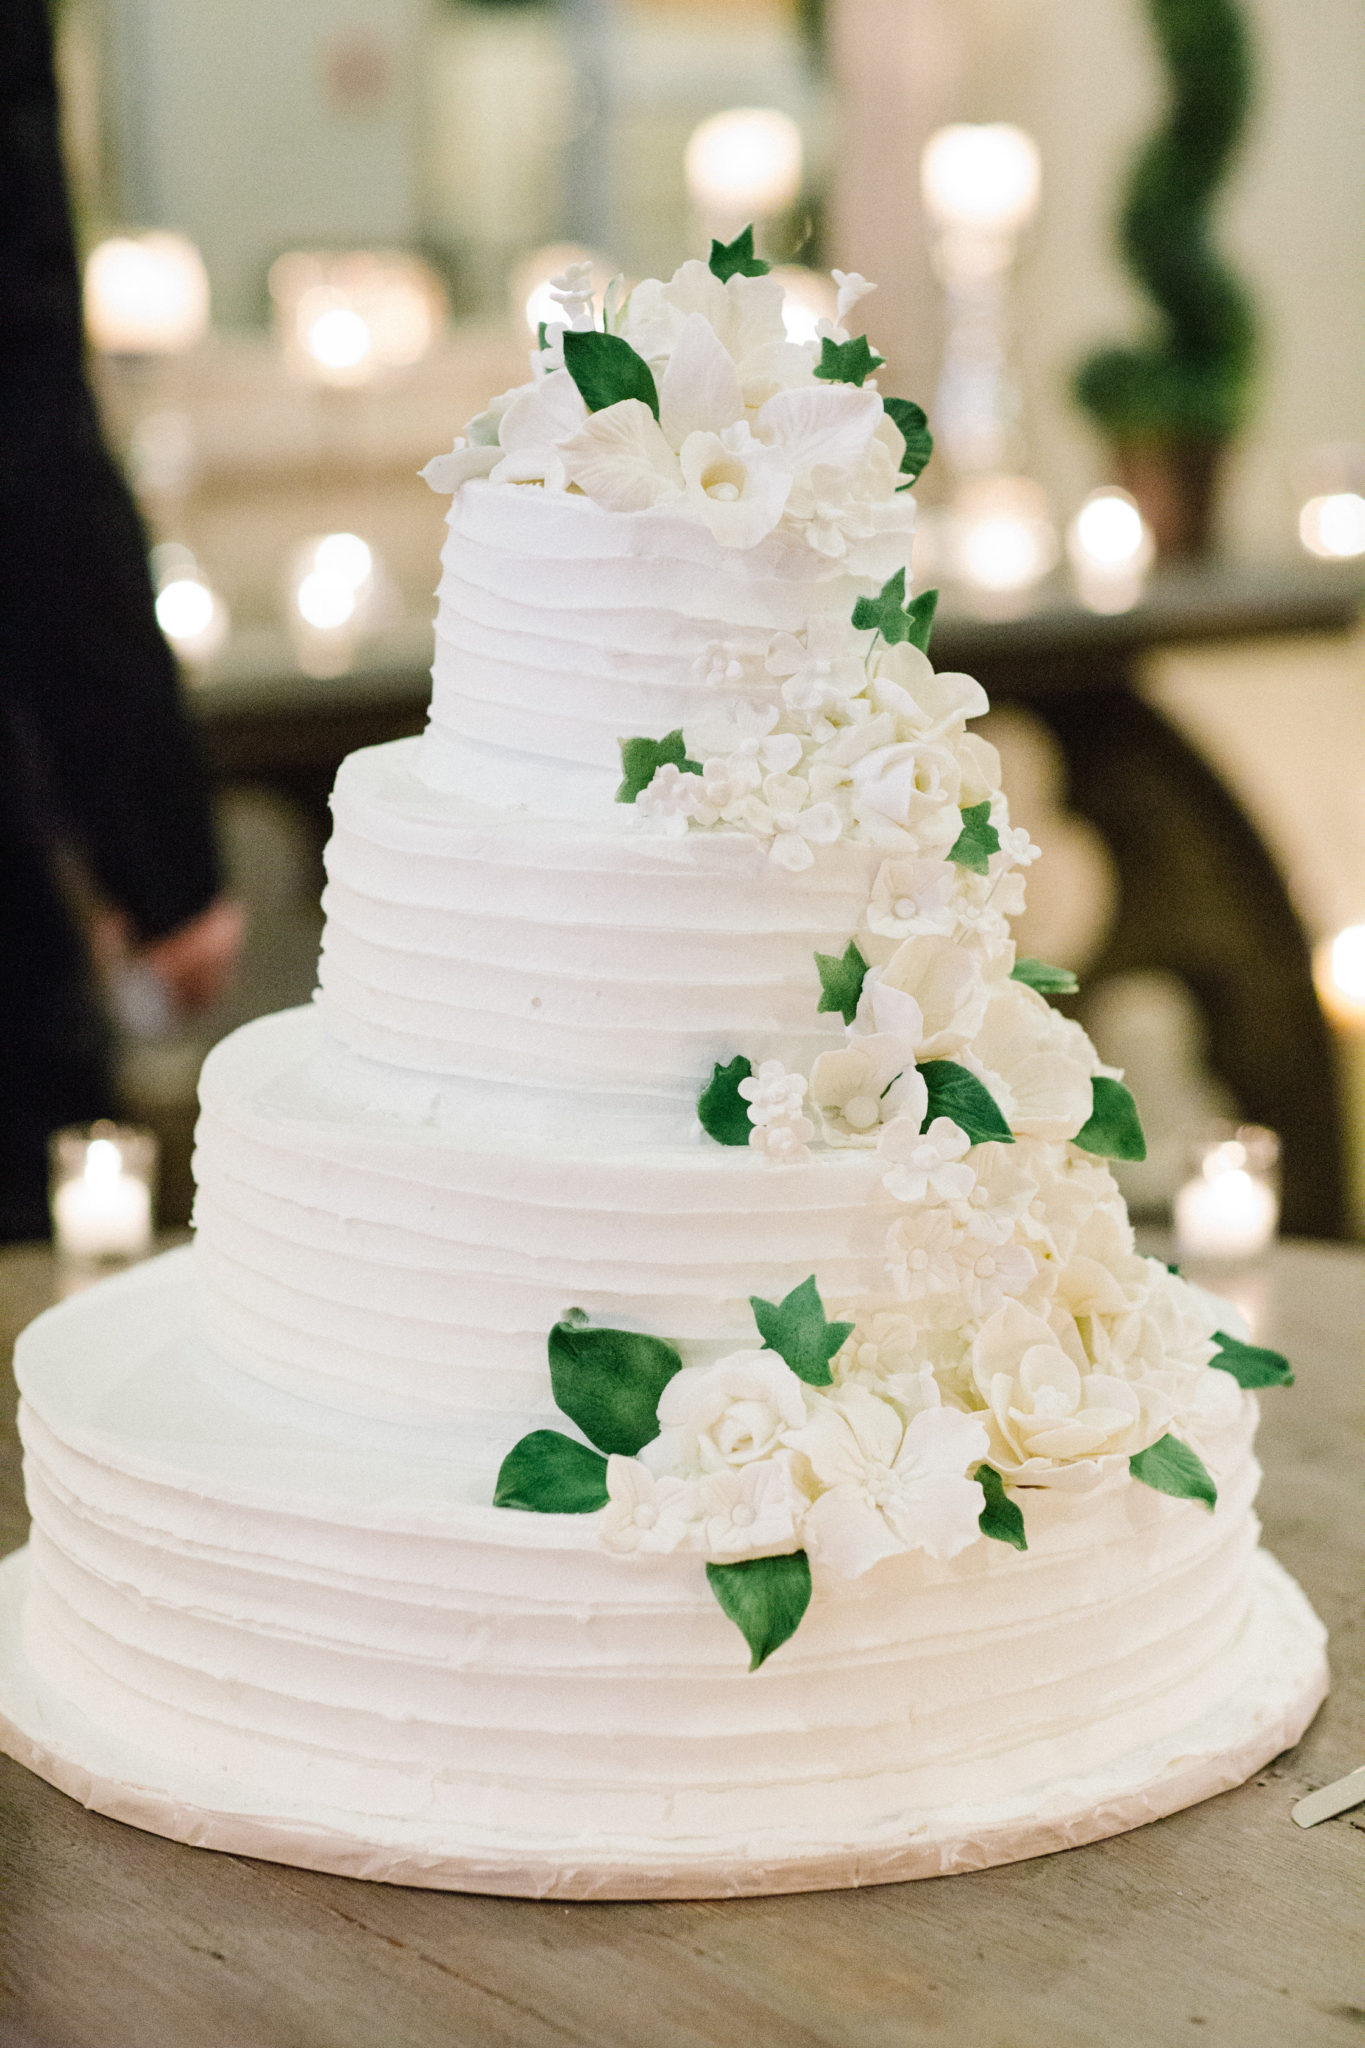 New Orleans wedding cake